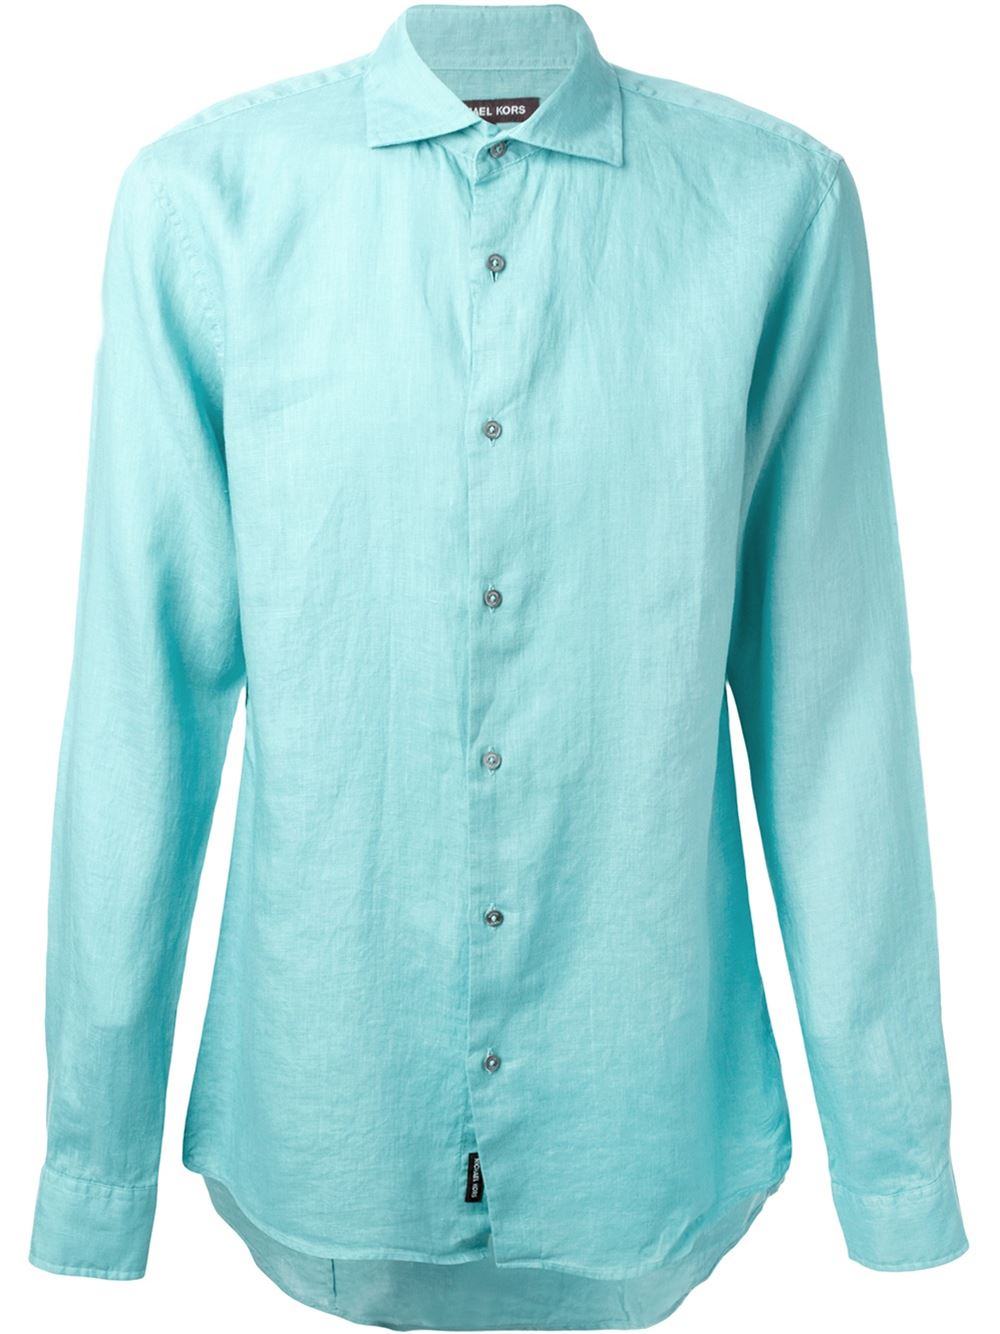 Michael kors spread collar shirt in teal for men blue lyst for What is a spread collar shirt